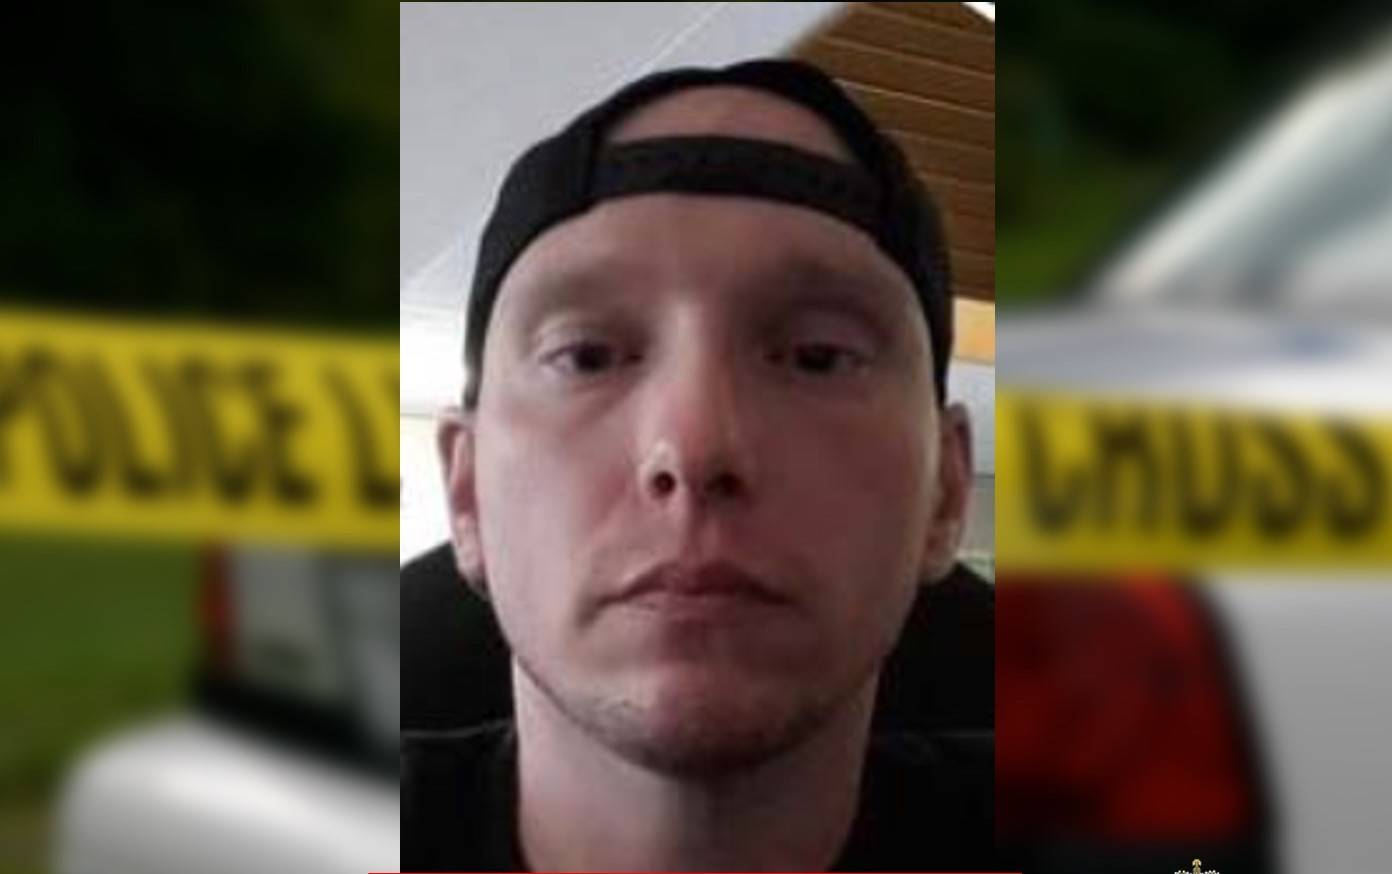 RCMP were searching for Philip Toner, who is a 'person of interest' in the investigation of a suspicious death in Kootenay National Park last week. Photo courtesy BC RCMP.